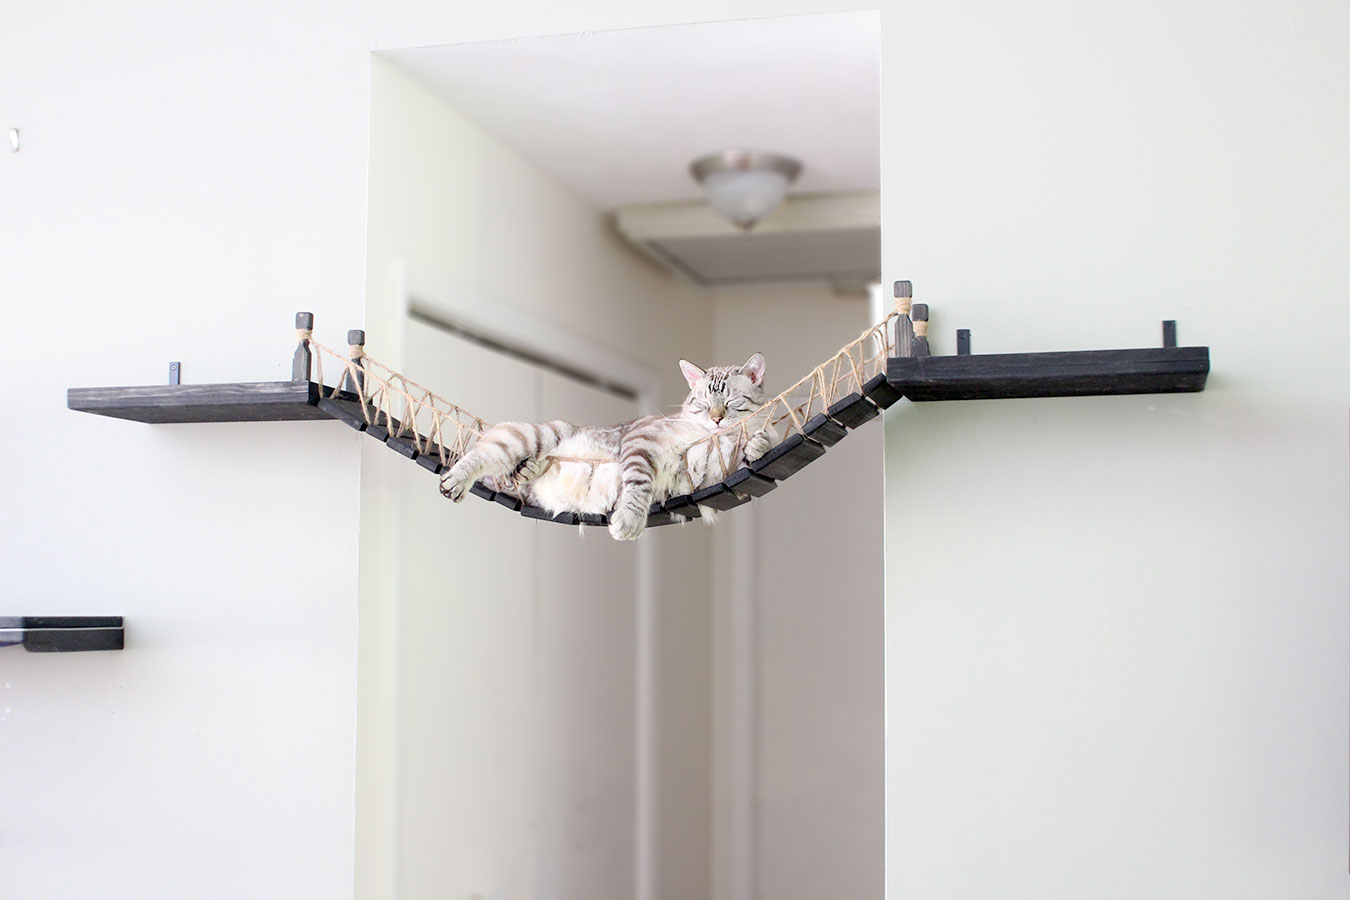 Roped Cat Bridge Catastrophic Creations